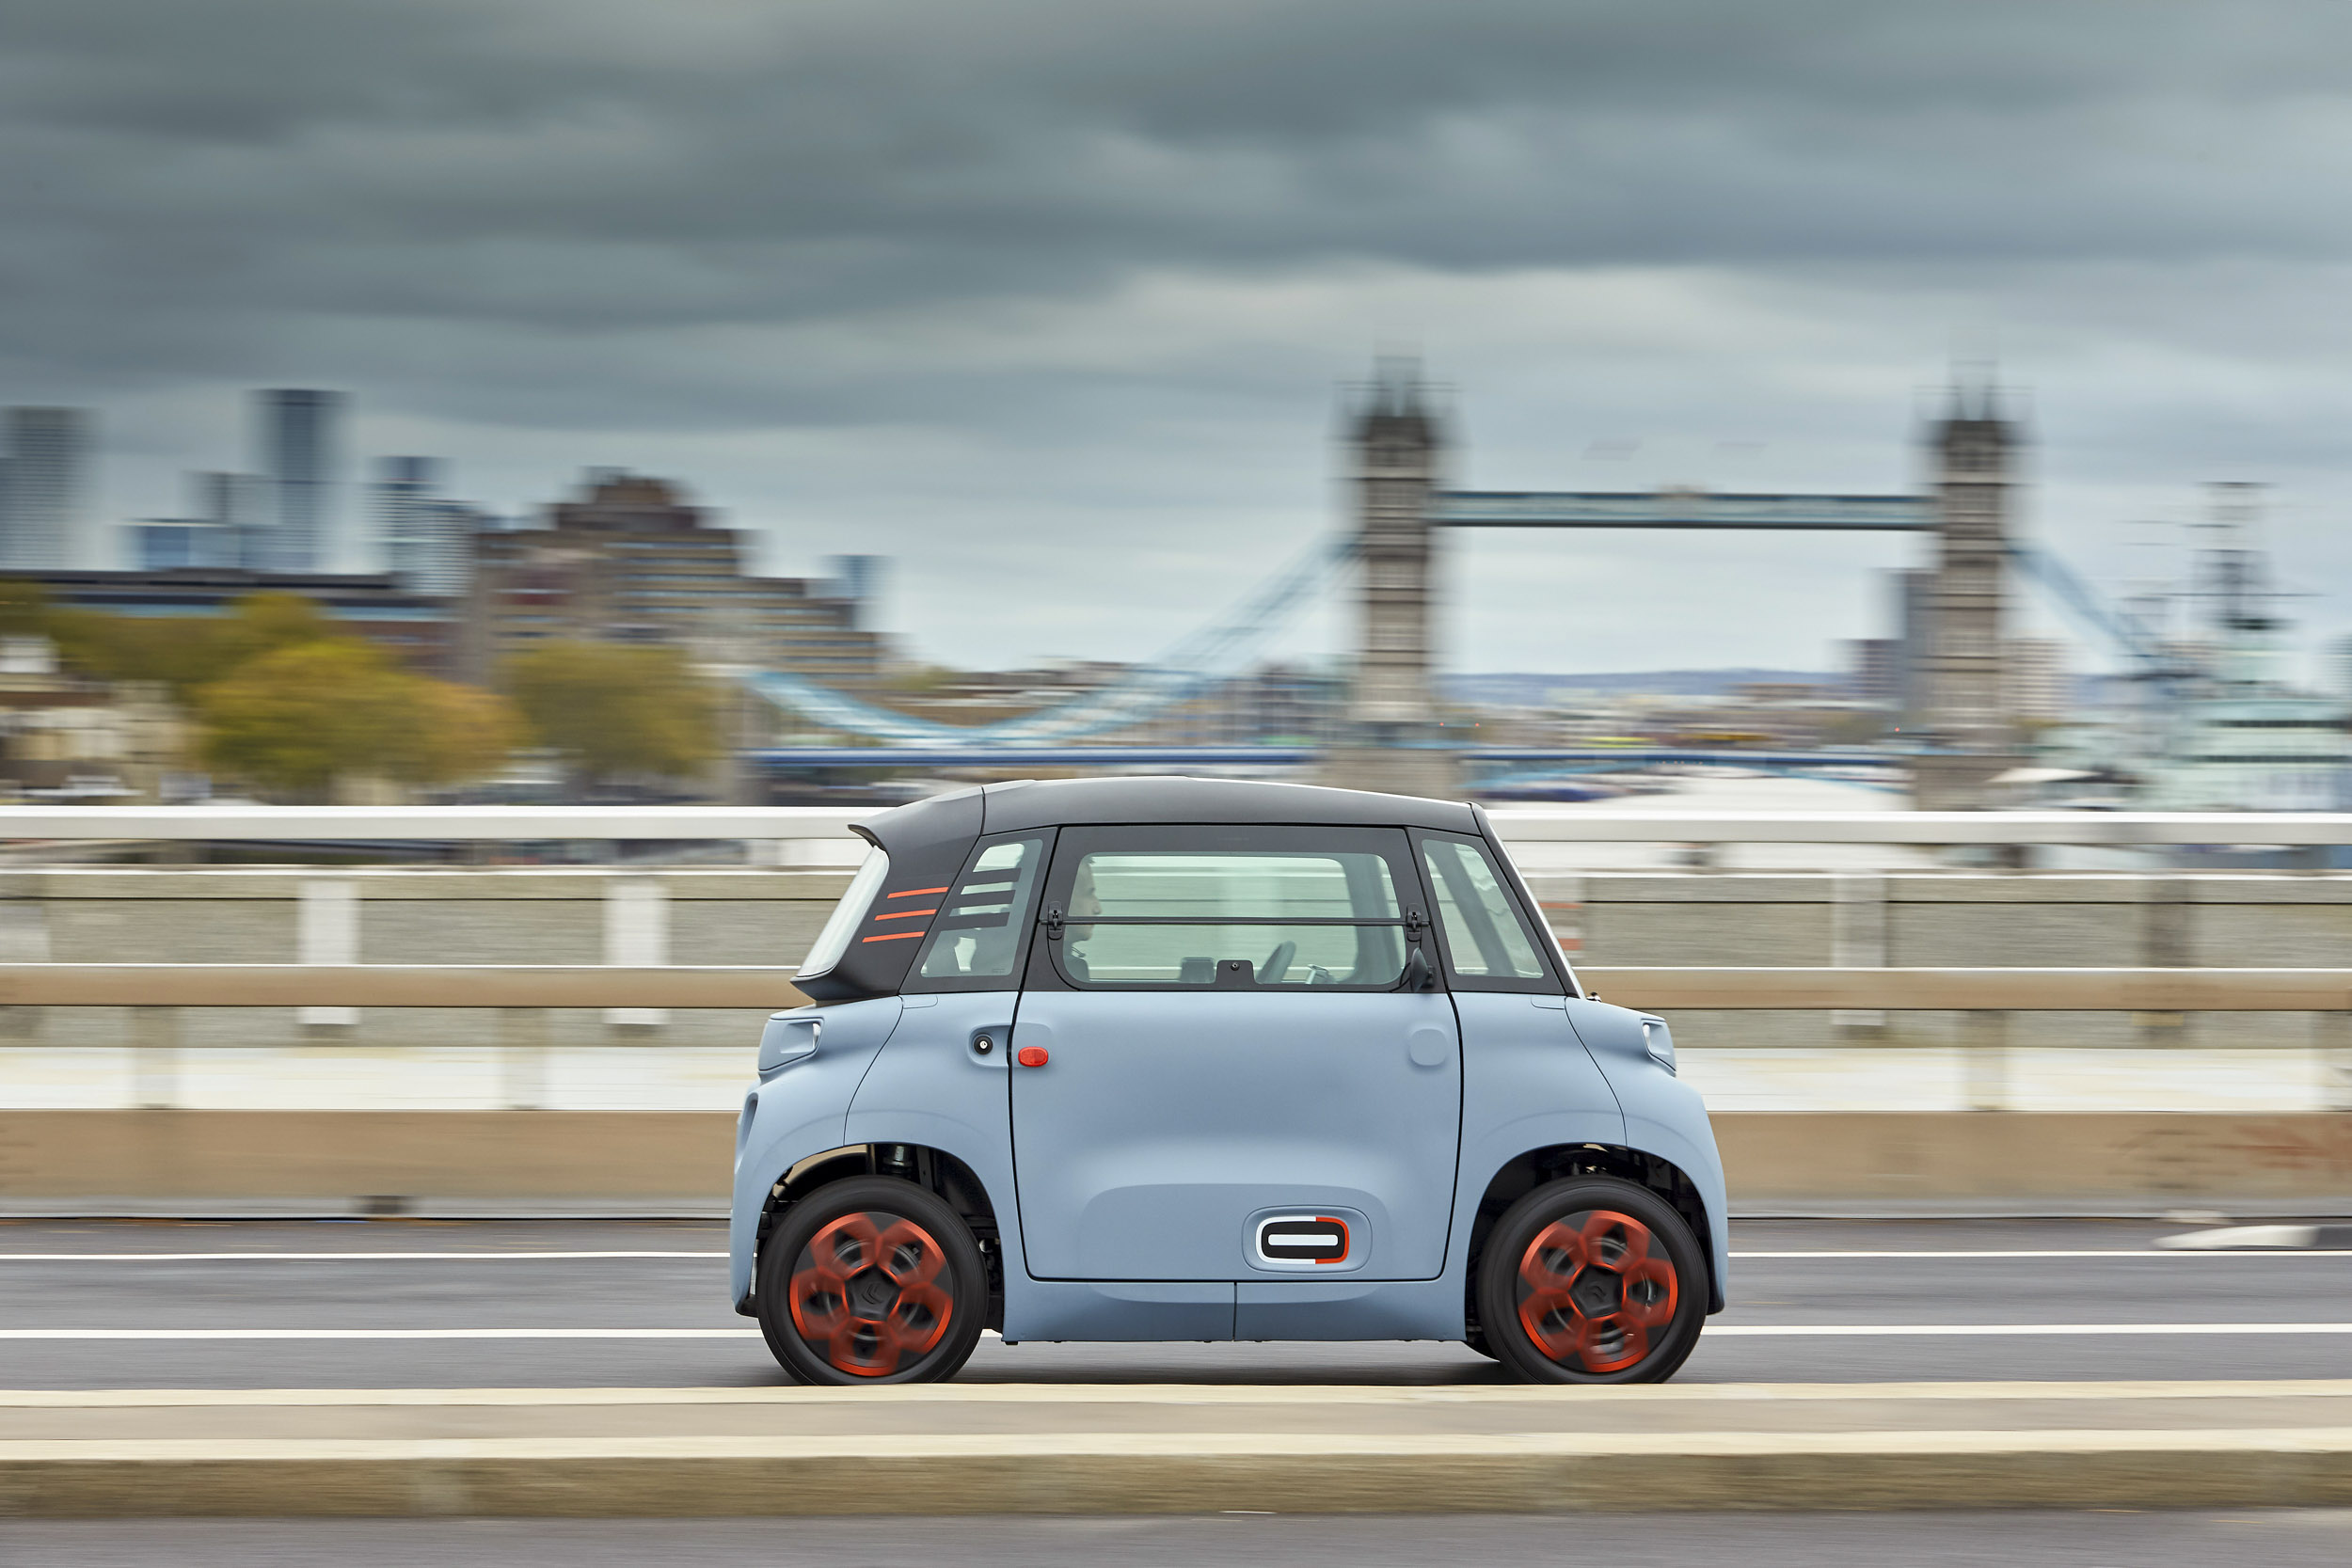 Review: The Ami city car is Citroën's welcome return to stranger things